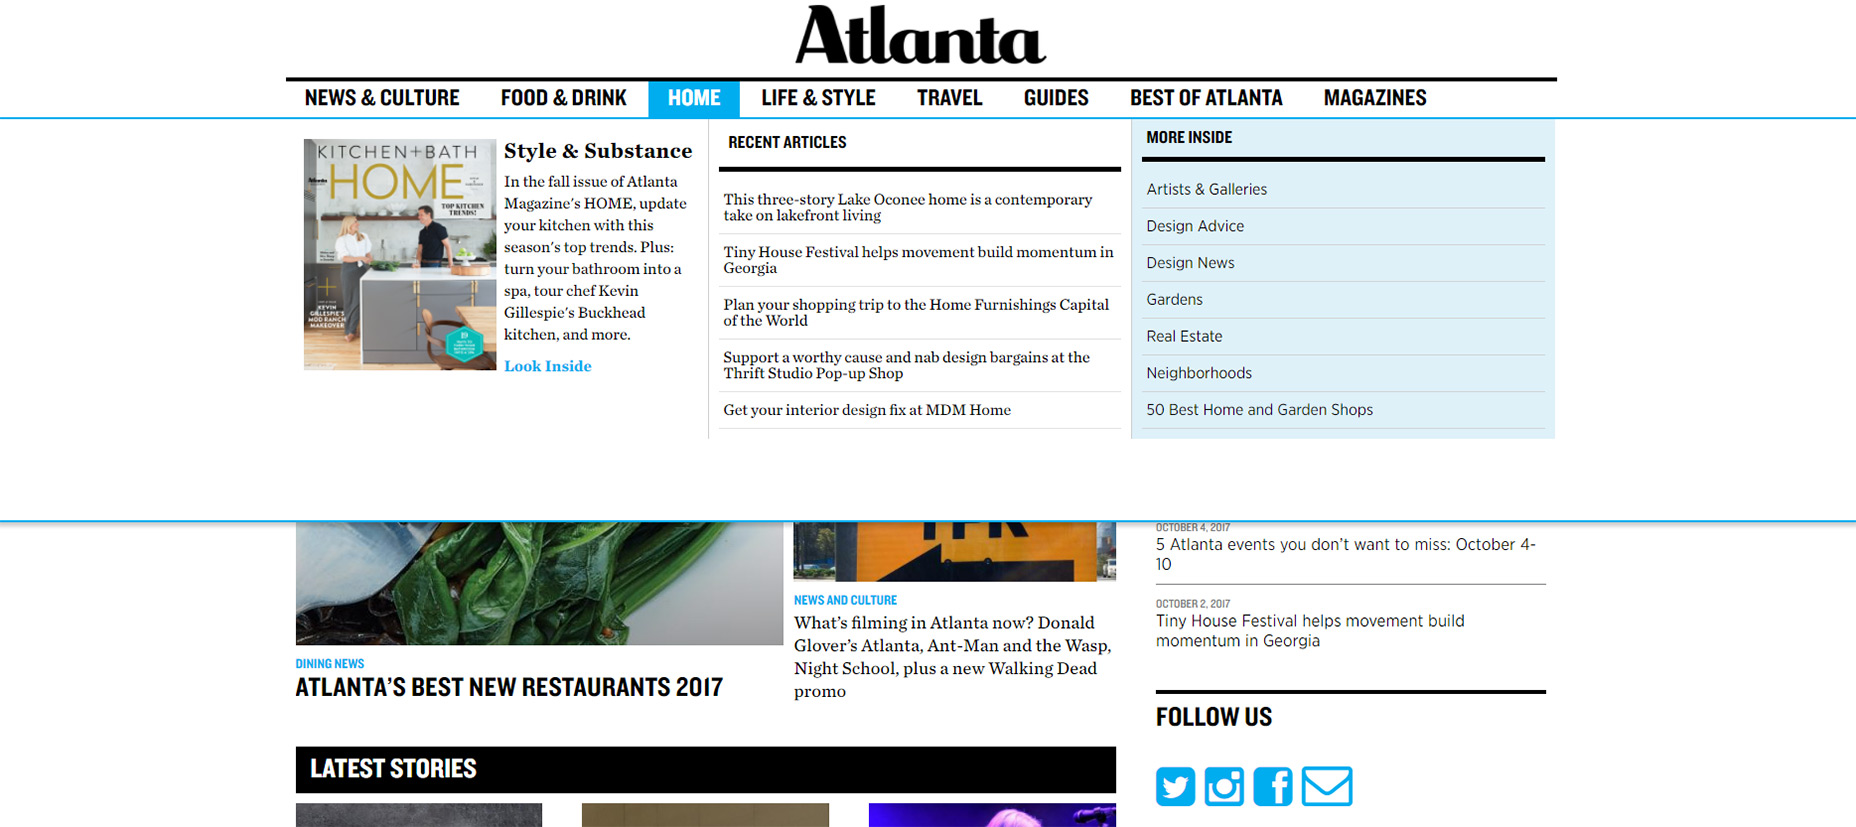 03-atlanta-magazine-dropdown-nav